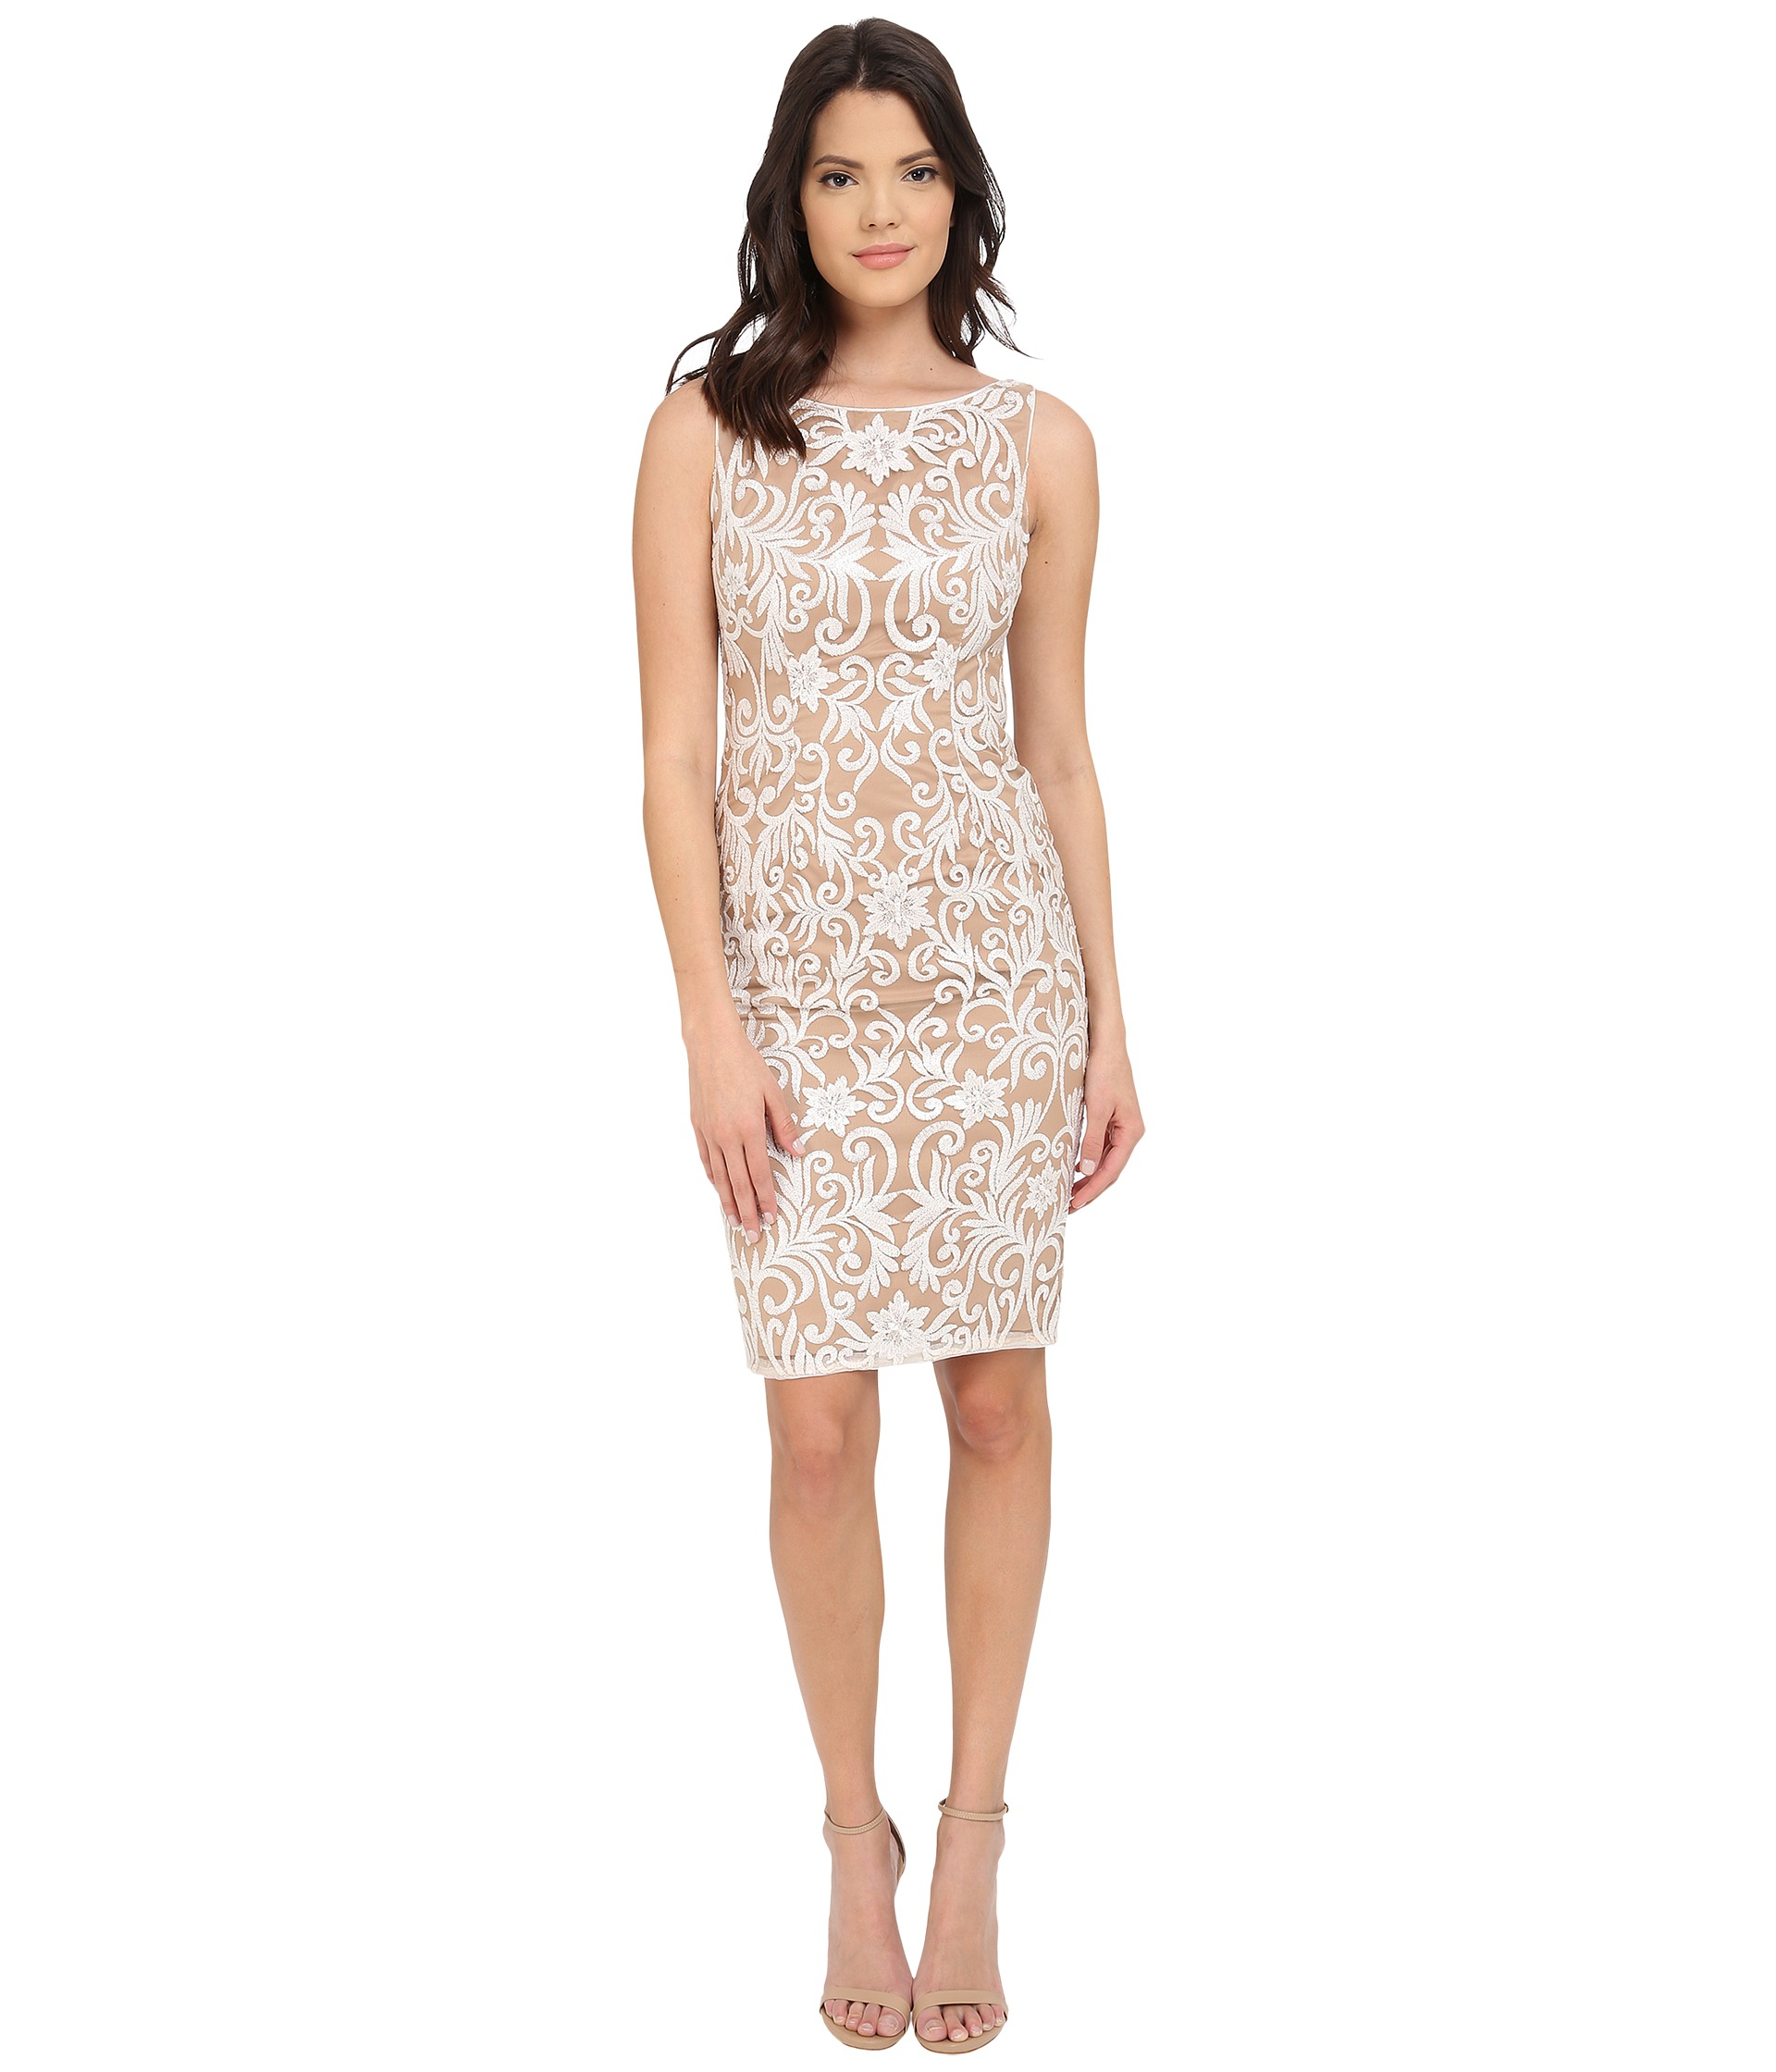 Women S Adrianna Papell Sequin Lace Dress Pictures to pin ...